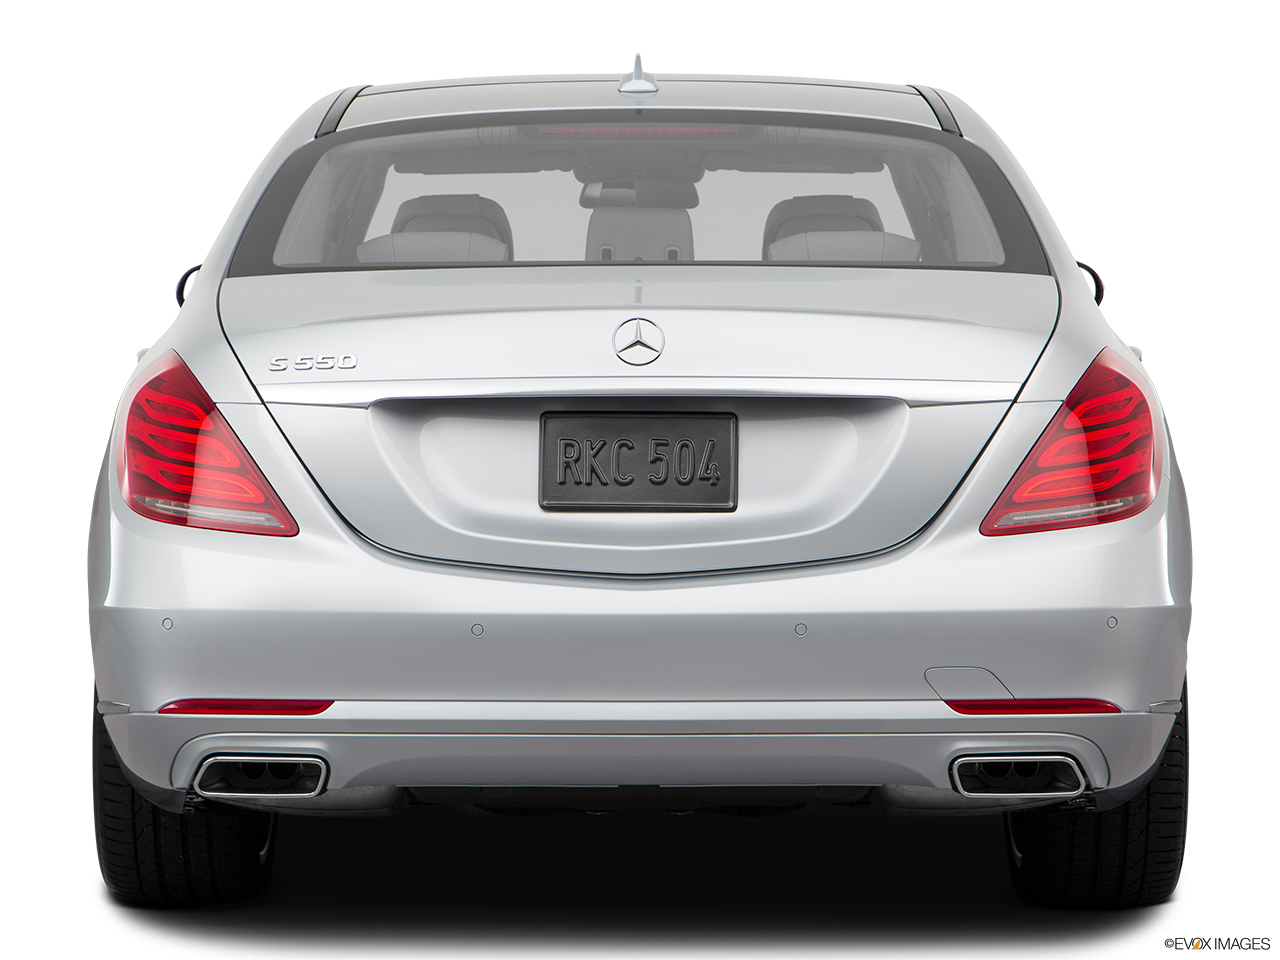 Car pictures list for mercedes benz s class 2017 s 400 for Mercedes benz payment estimator